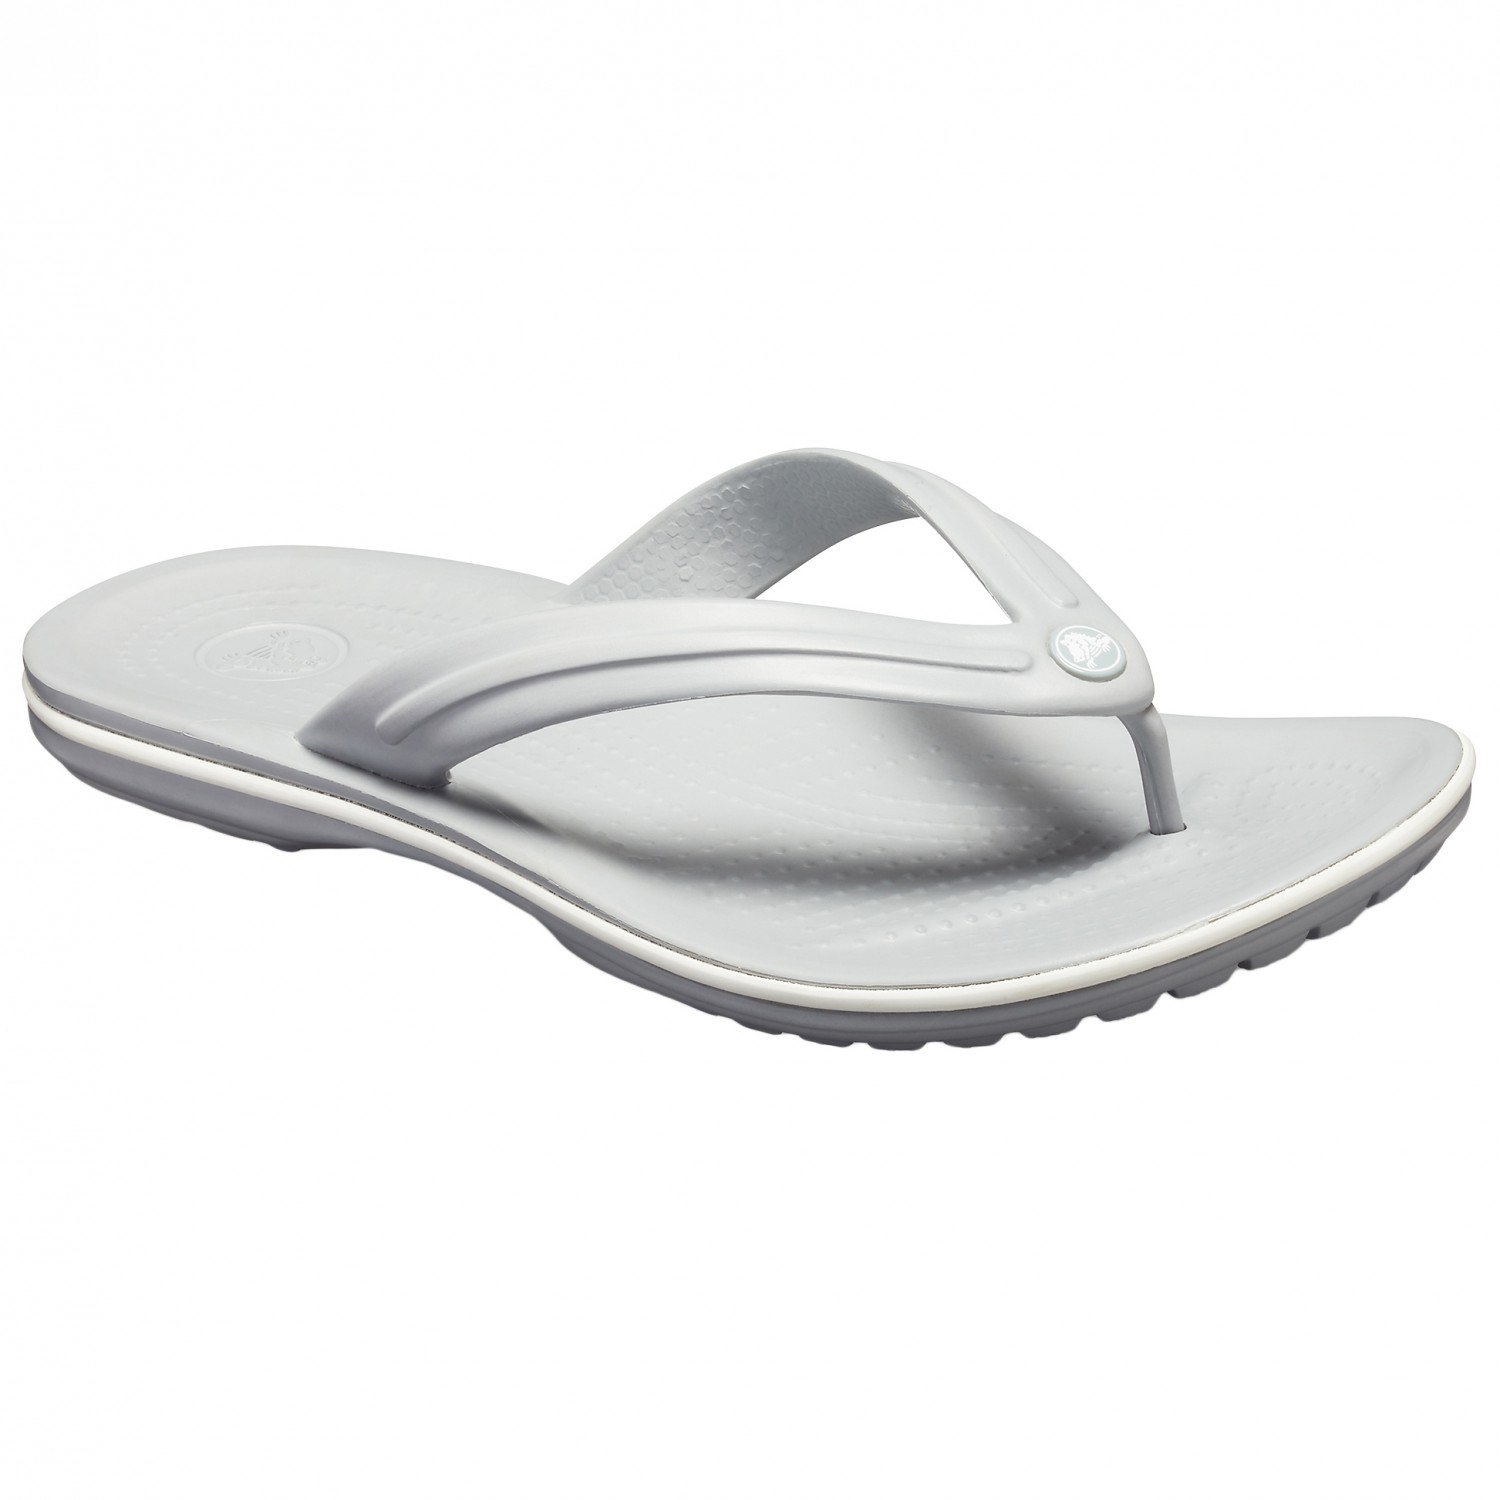 outlet store 397ff 9de1d Crocs Crocband Flip - Sandals | Buy online | Alpinetrek.co.uk